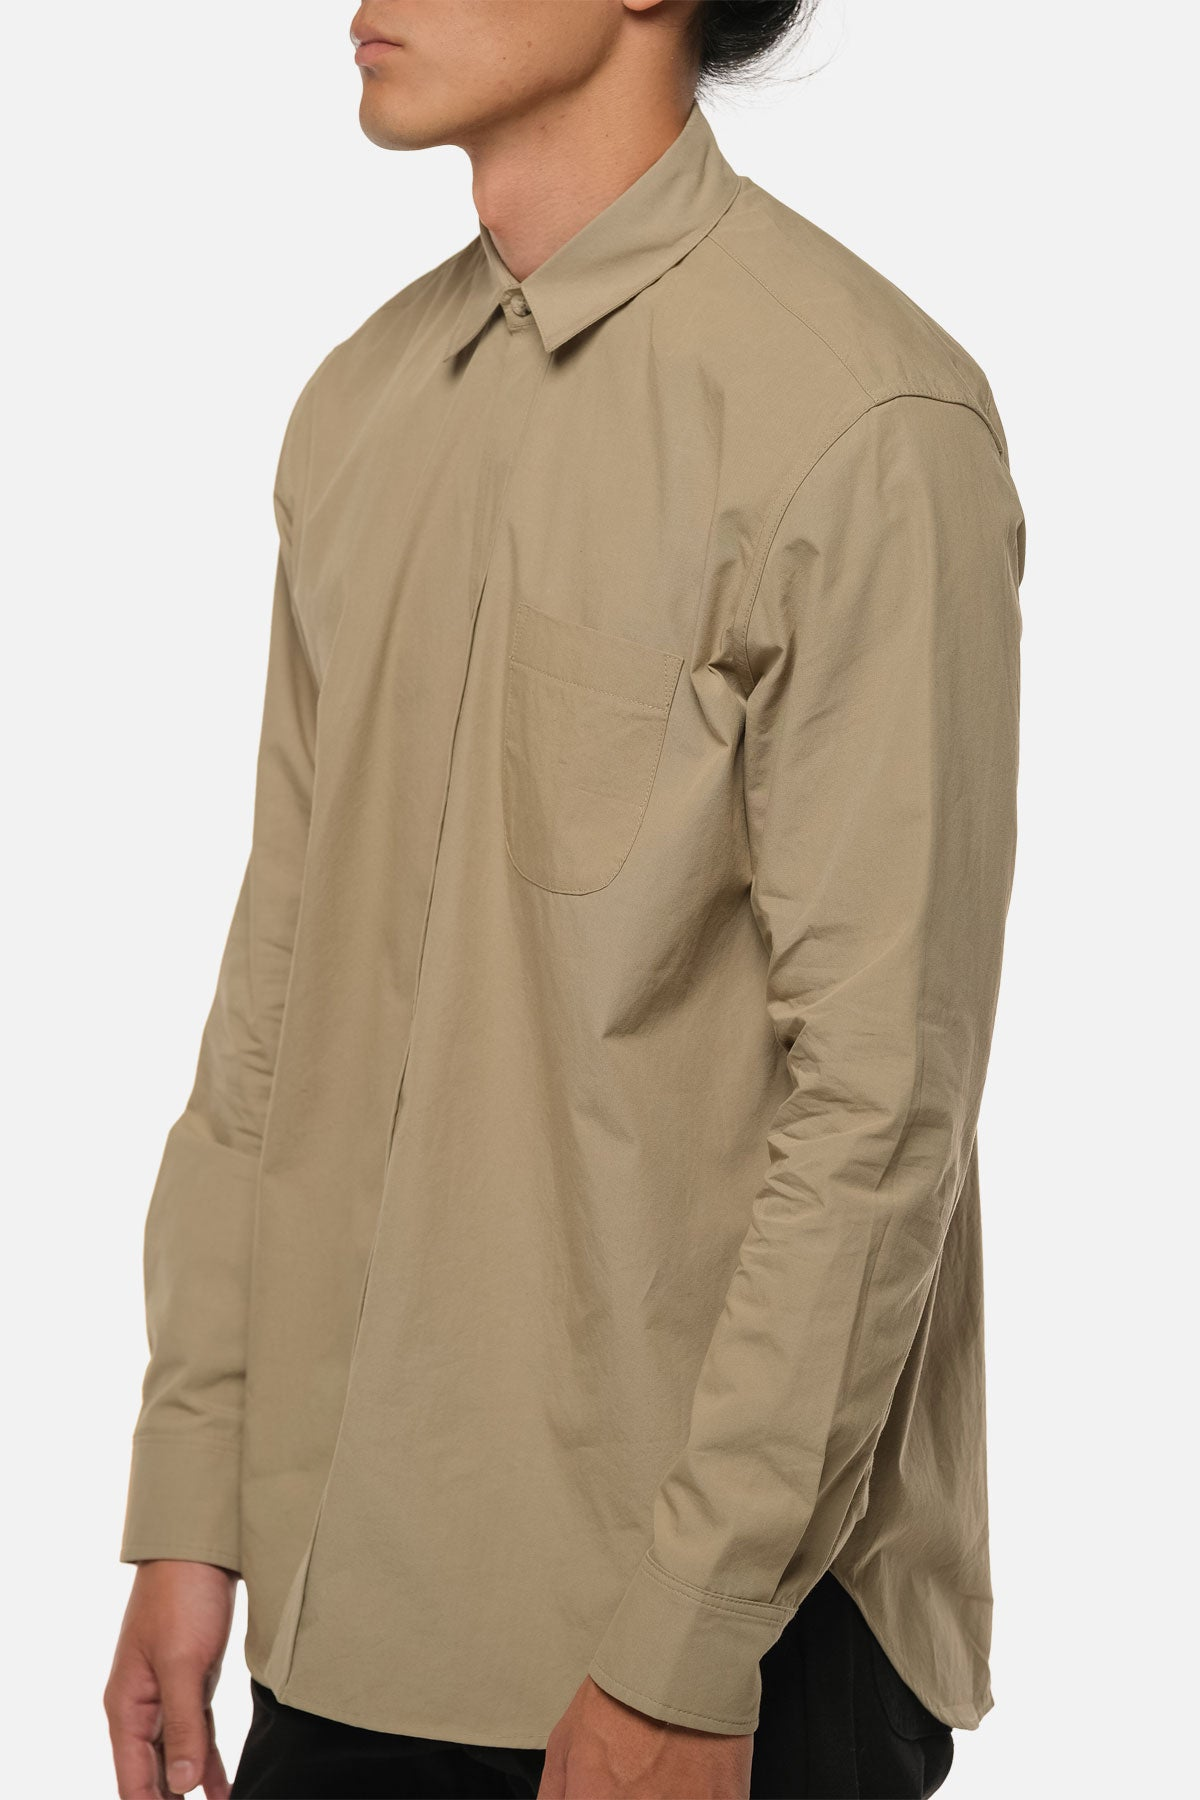 1905 SHIRT IN TAUPE - Fortune Goods